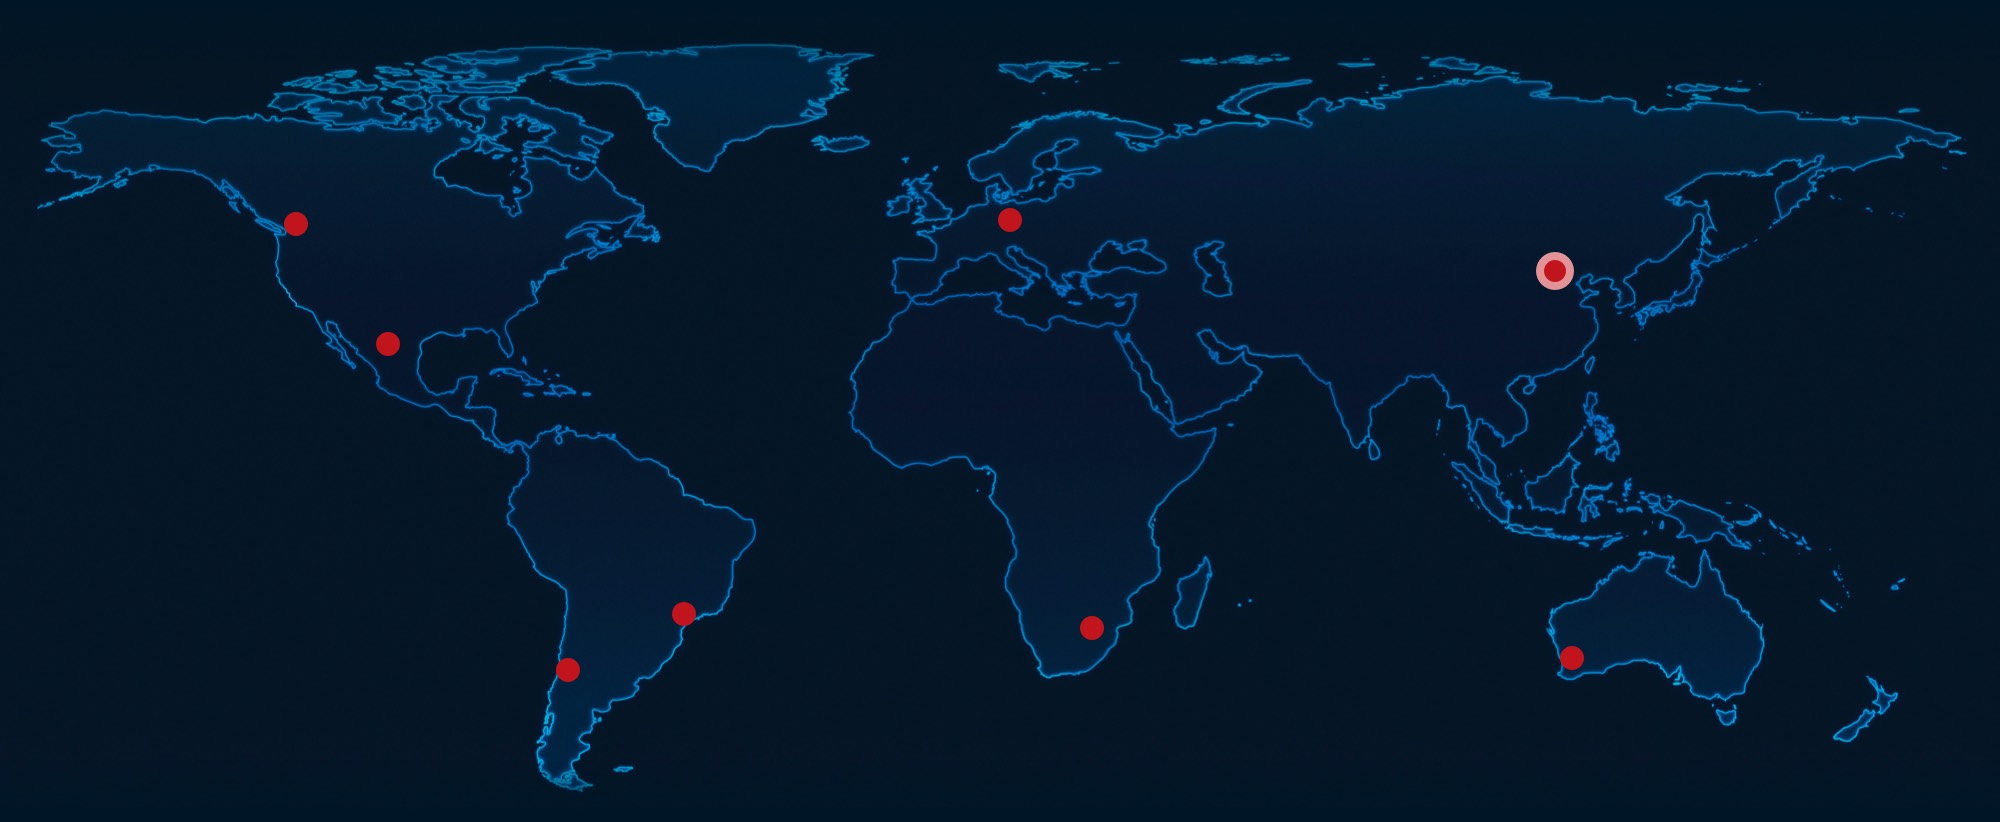 Global offices in Canada, South Africa, Chile, Brazil, Mexico, China, Australia, Germany